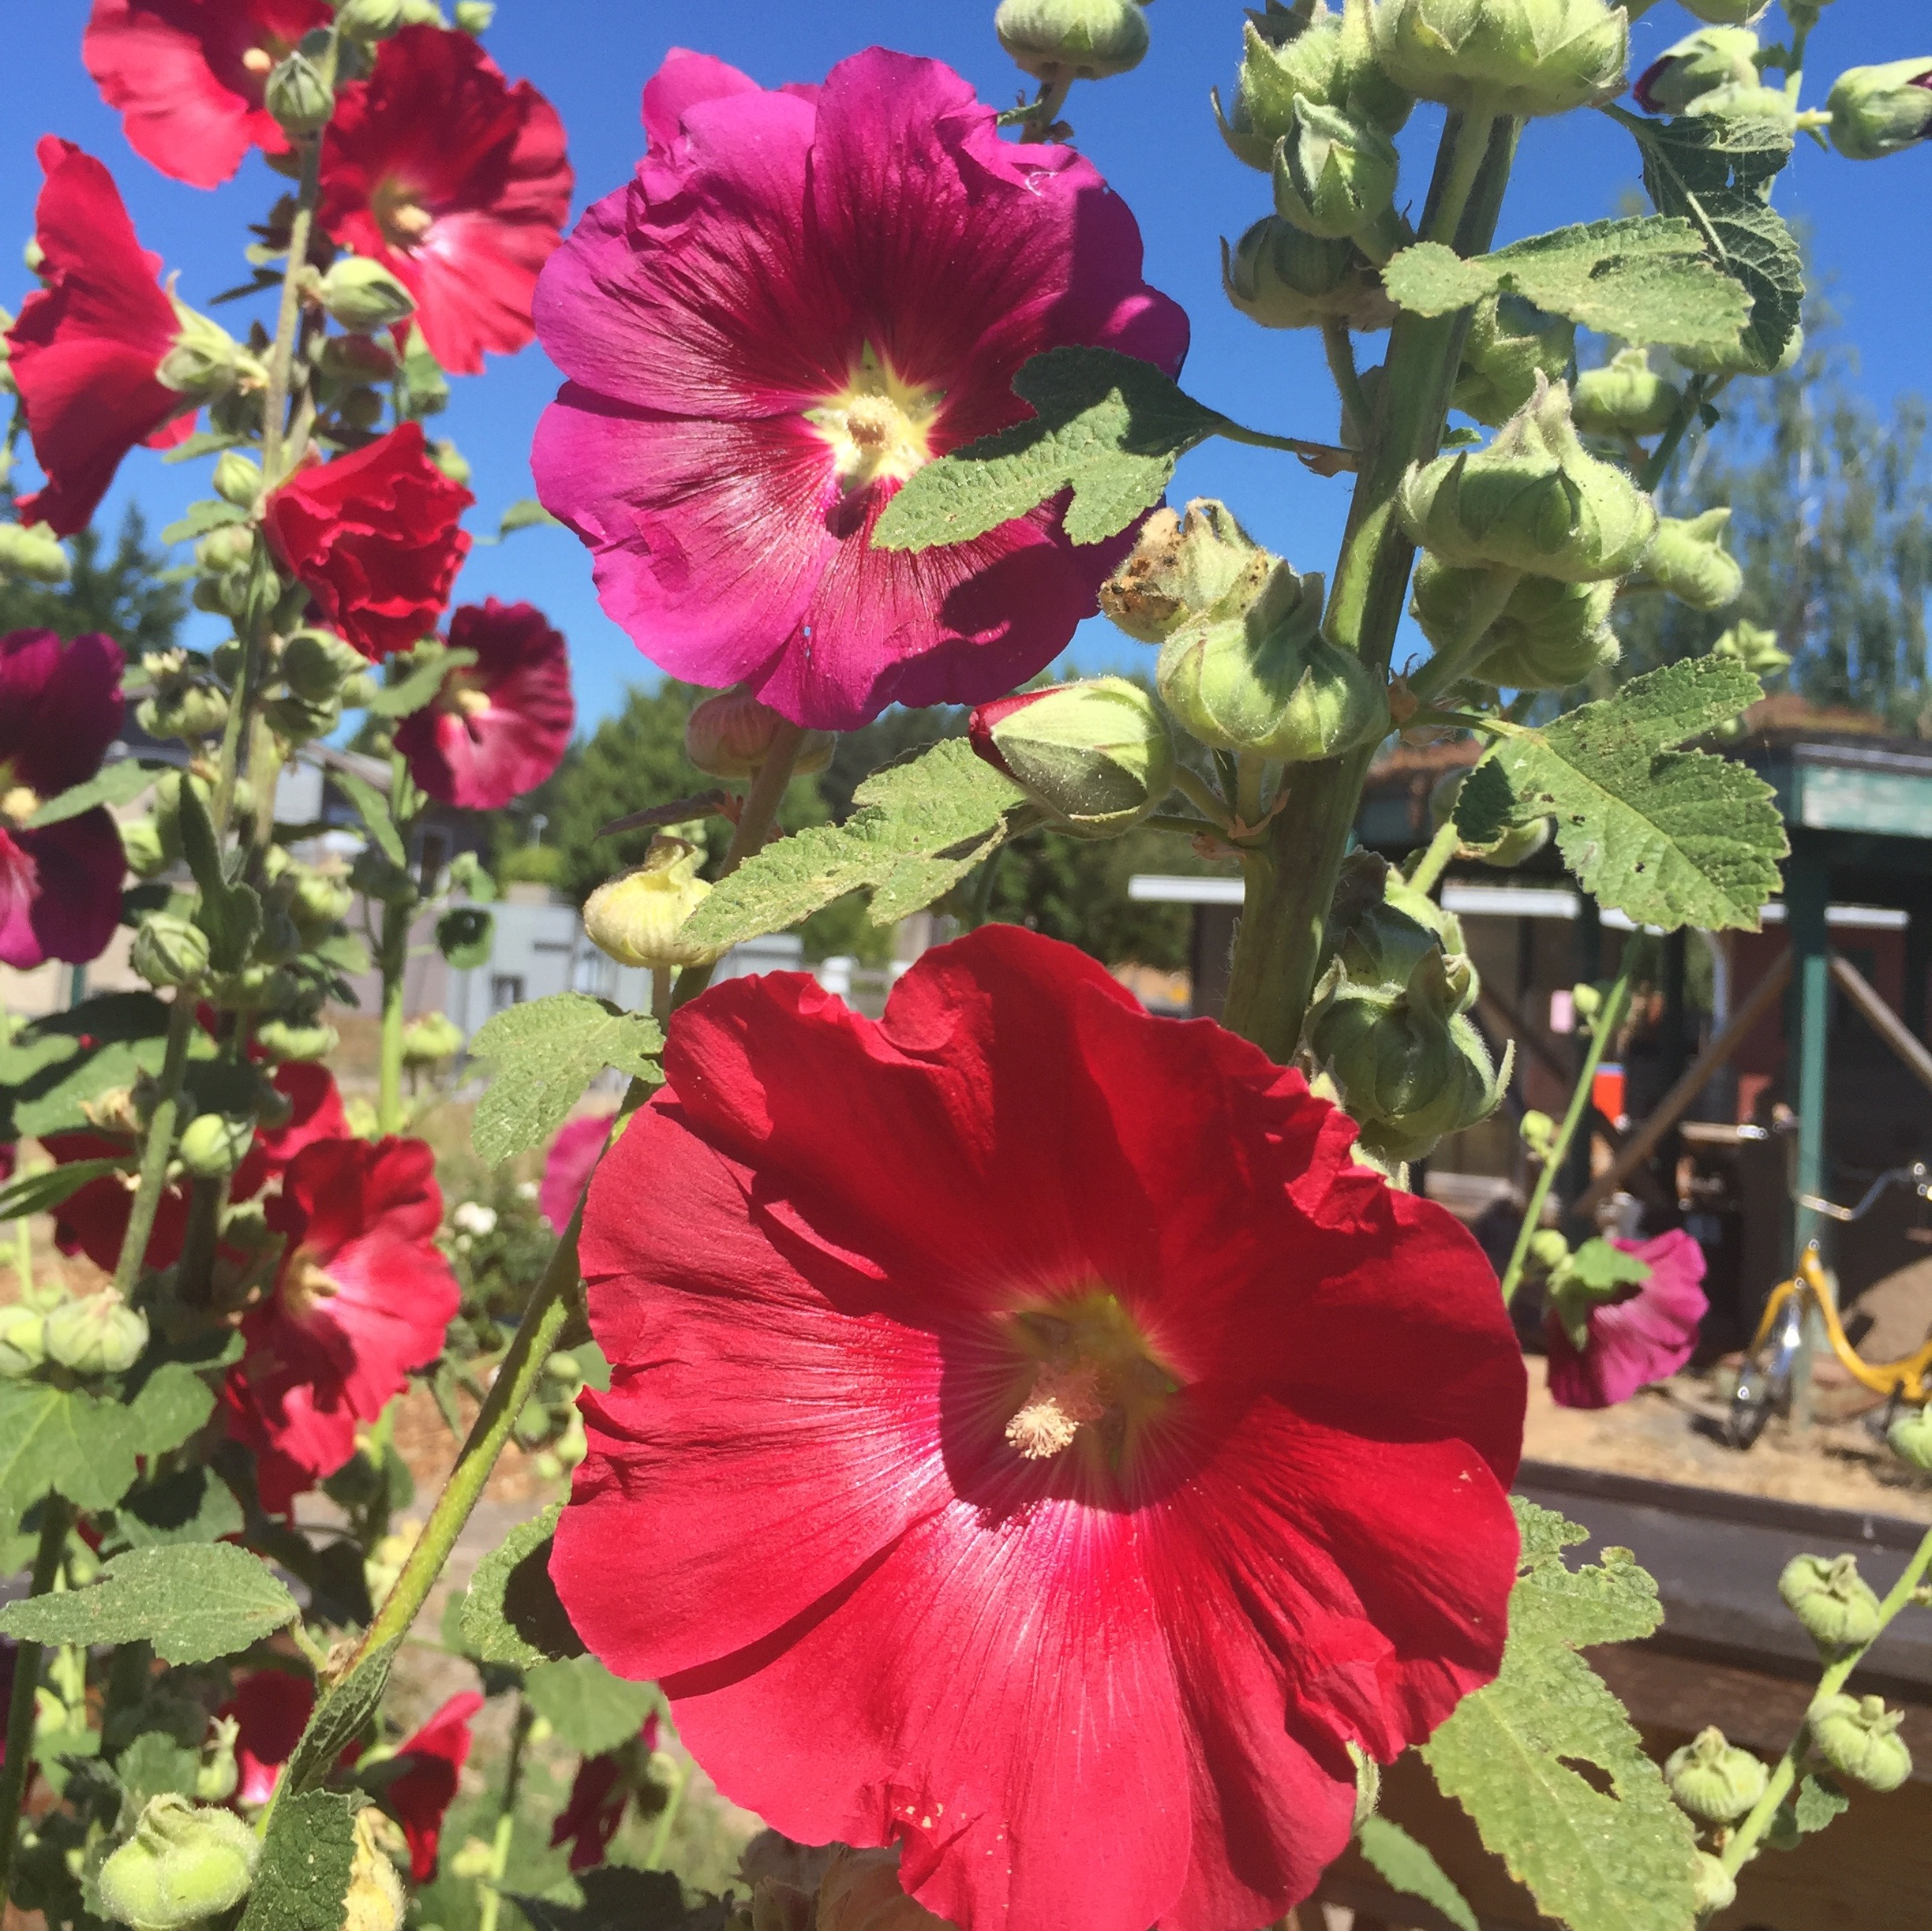 Bright red flowers from a hollyhock plant.